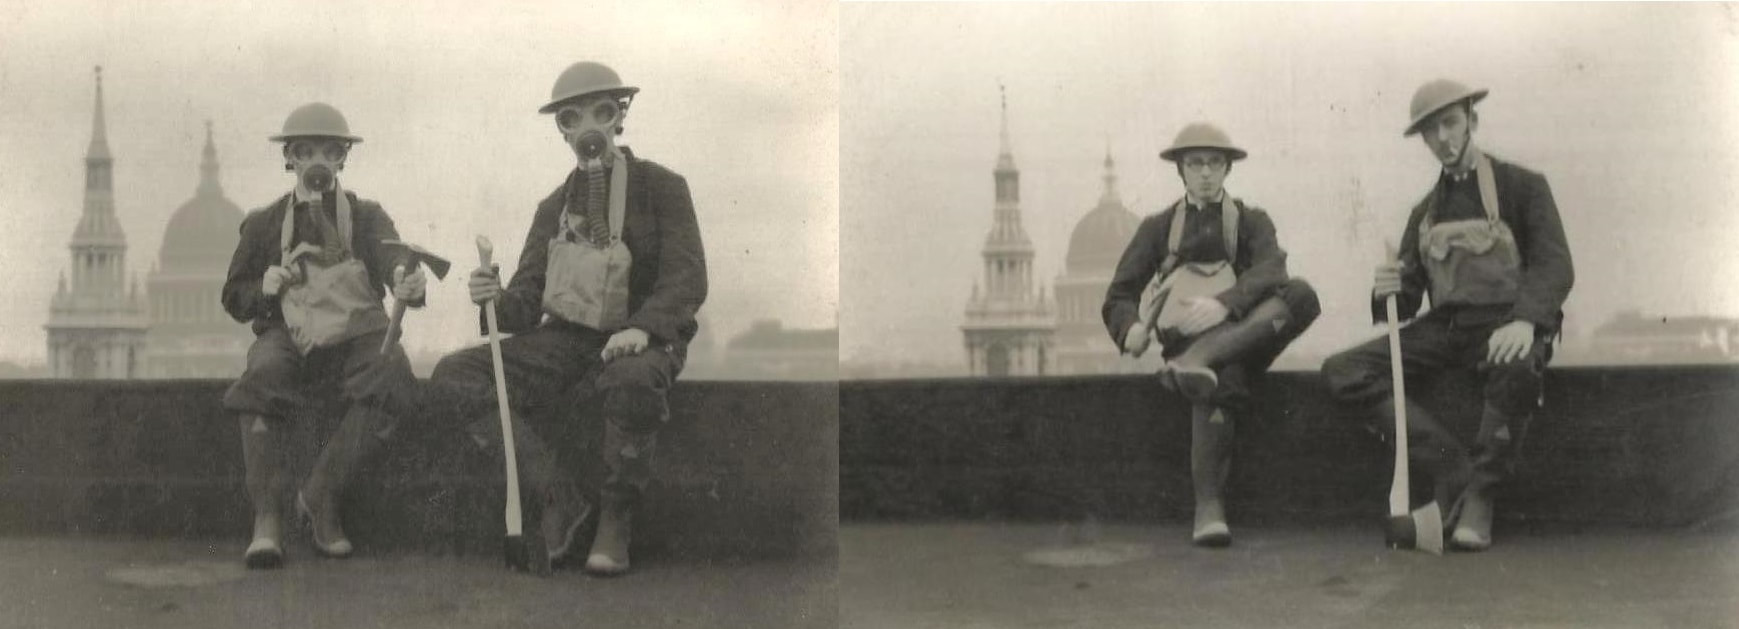 WW2 London Fire Watchers With St. Paul's Cathedral